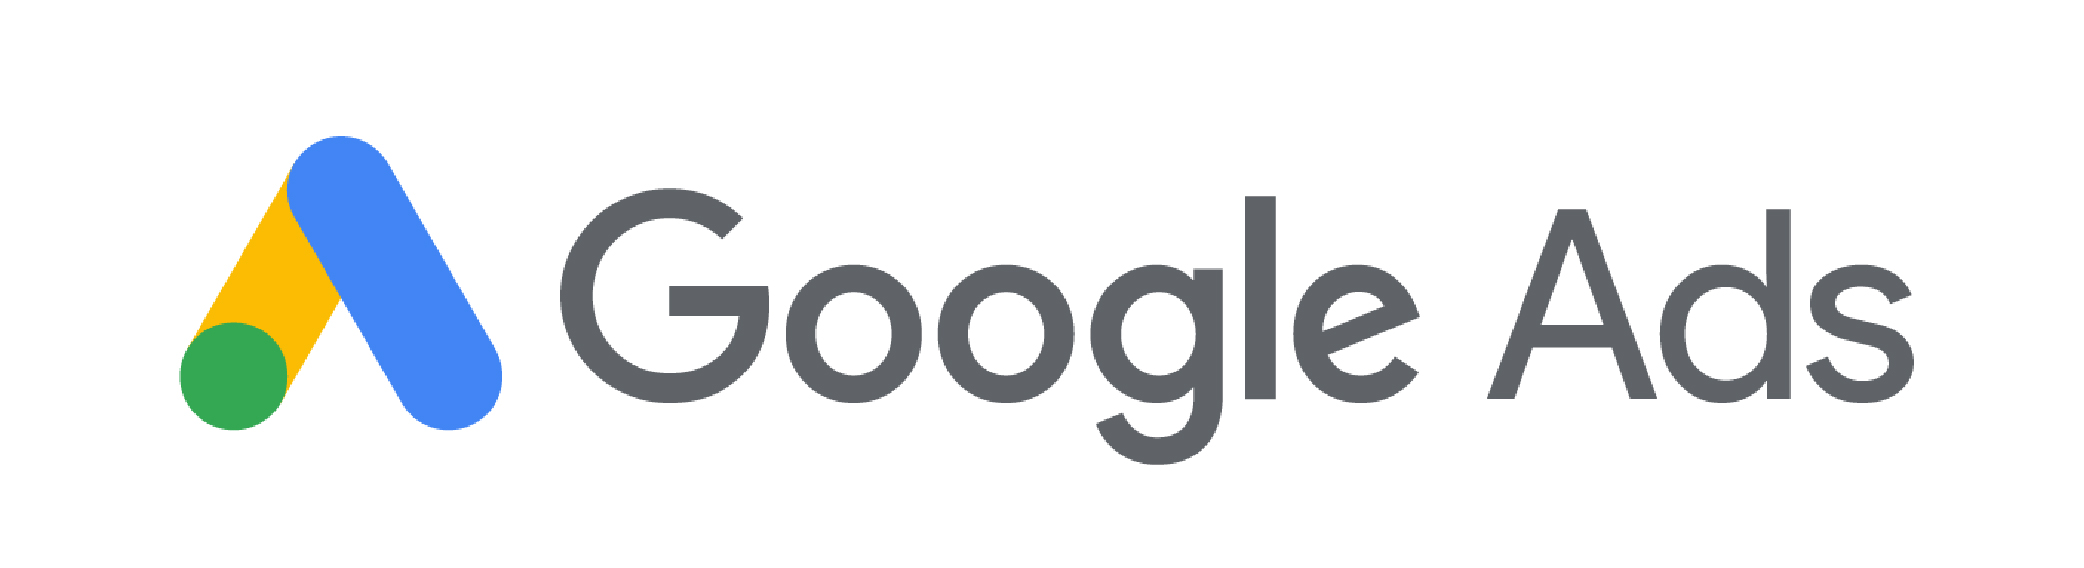 Google Ads management and digital marketing from Lojix | SEO Leeds, Sheffield, Barnsley